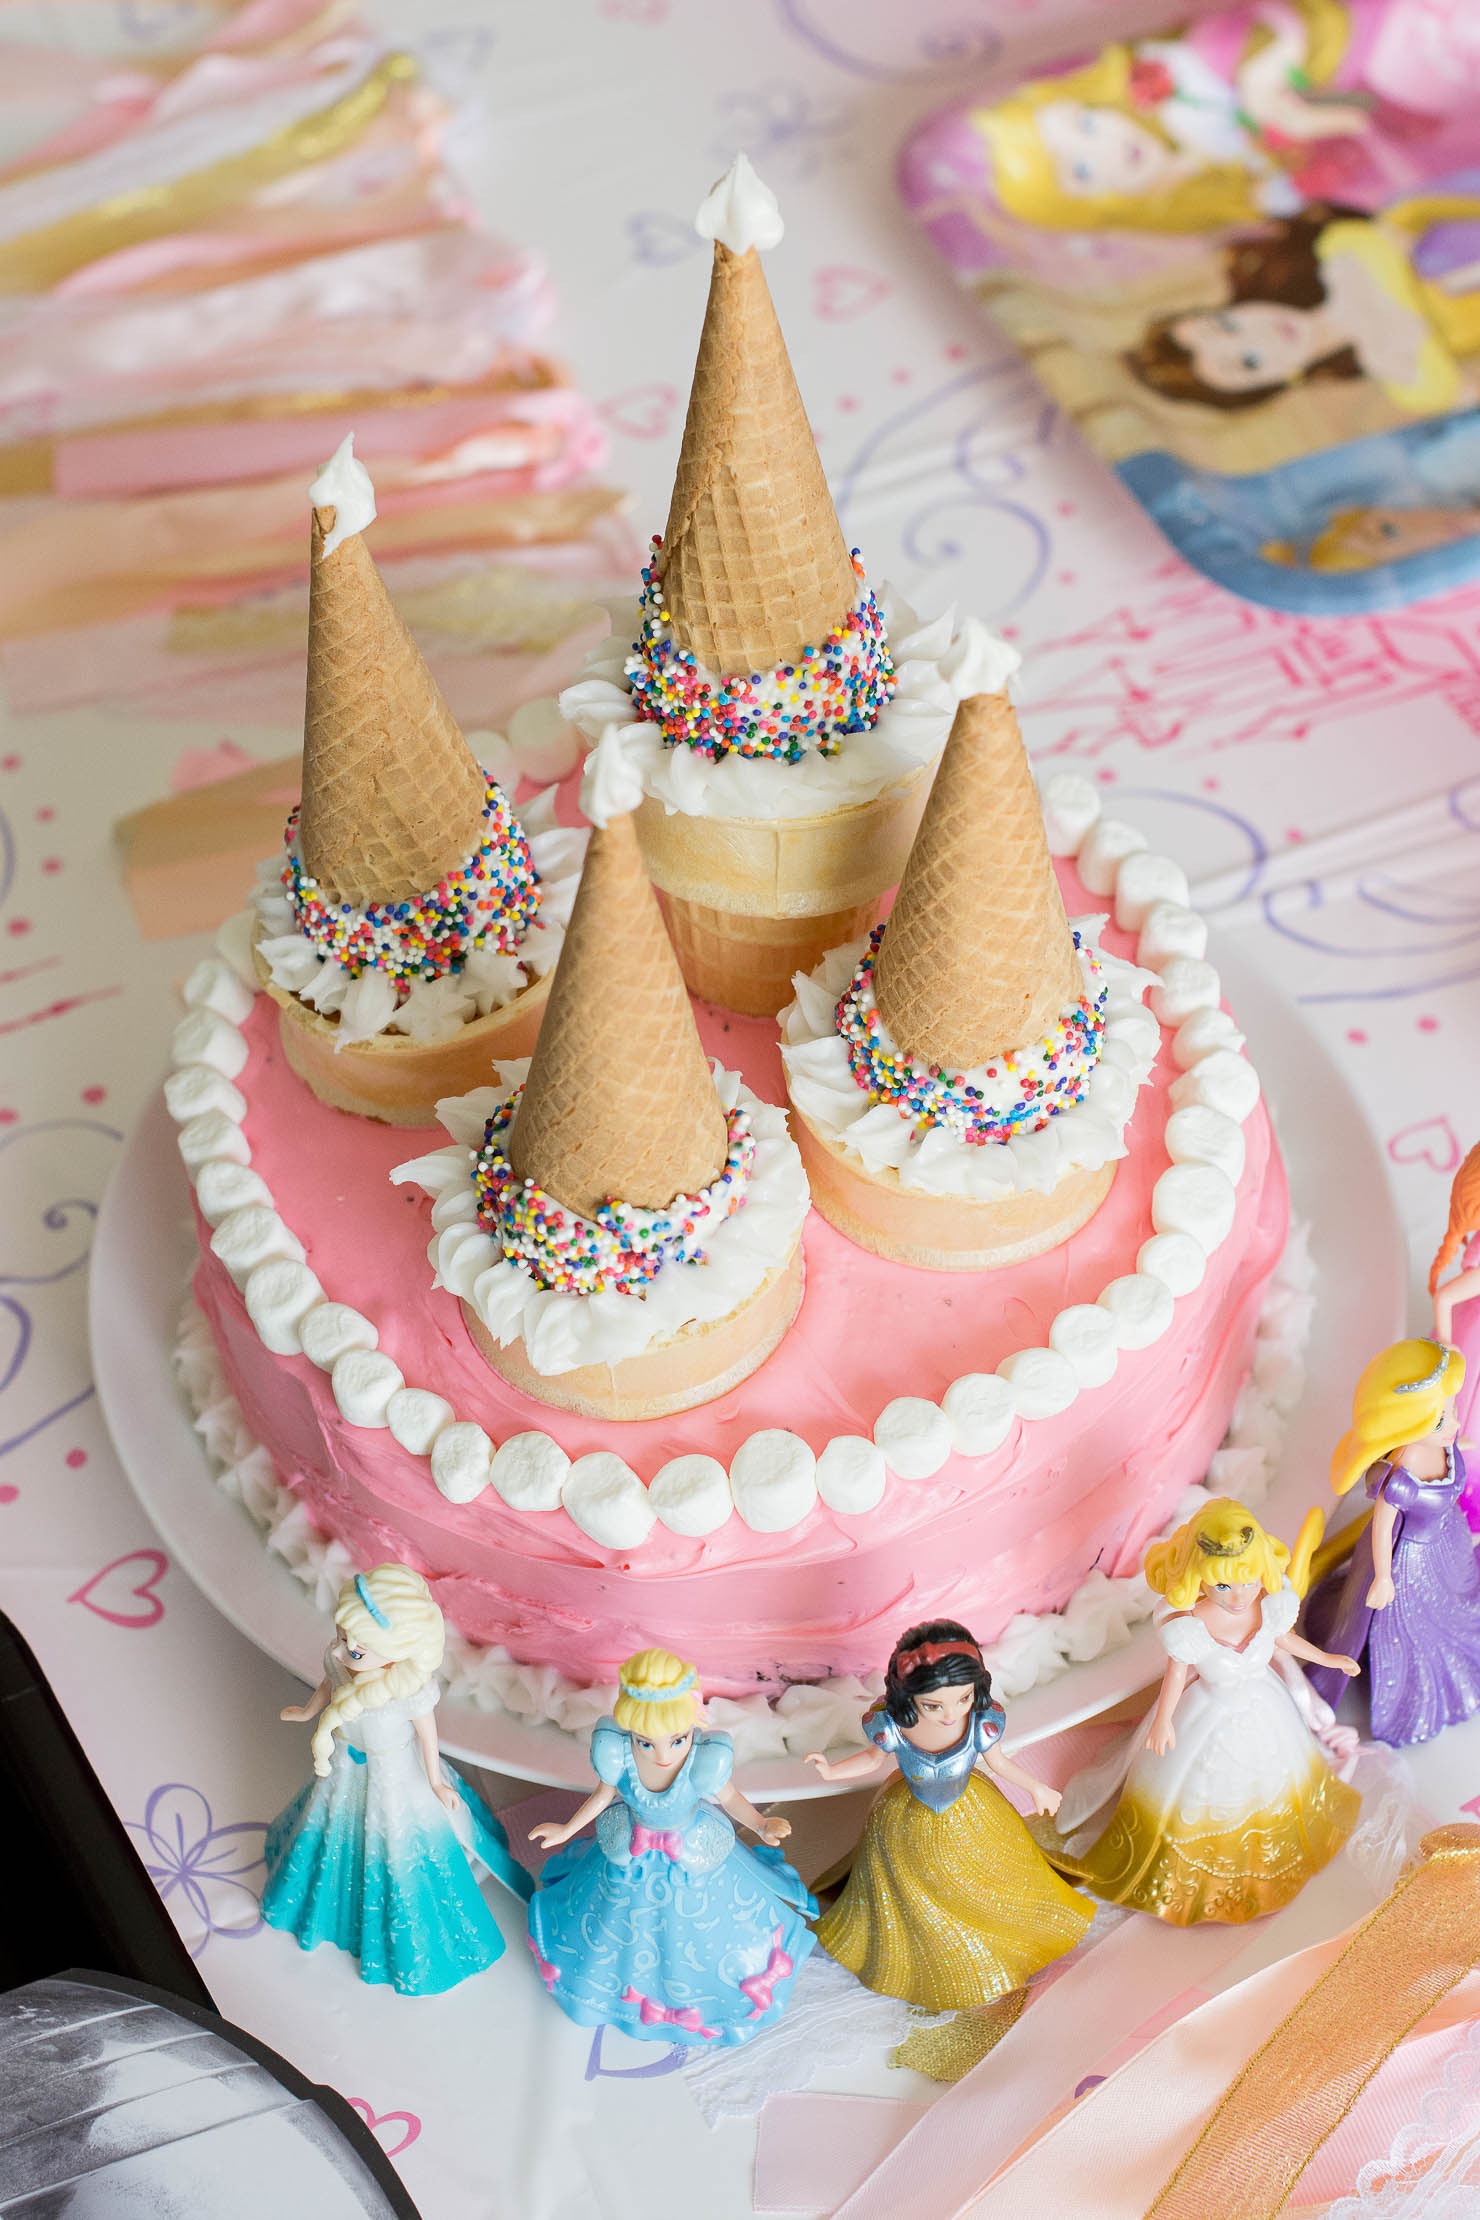 American Greetings At Target Decorating For A Princess Birthday Party An Easy Cake